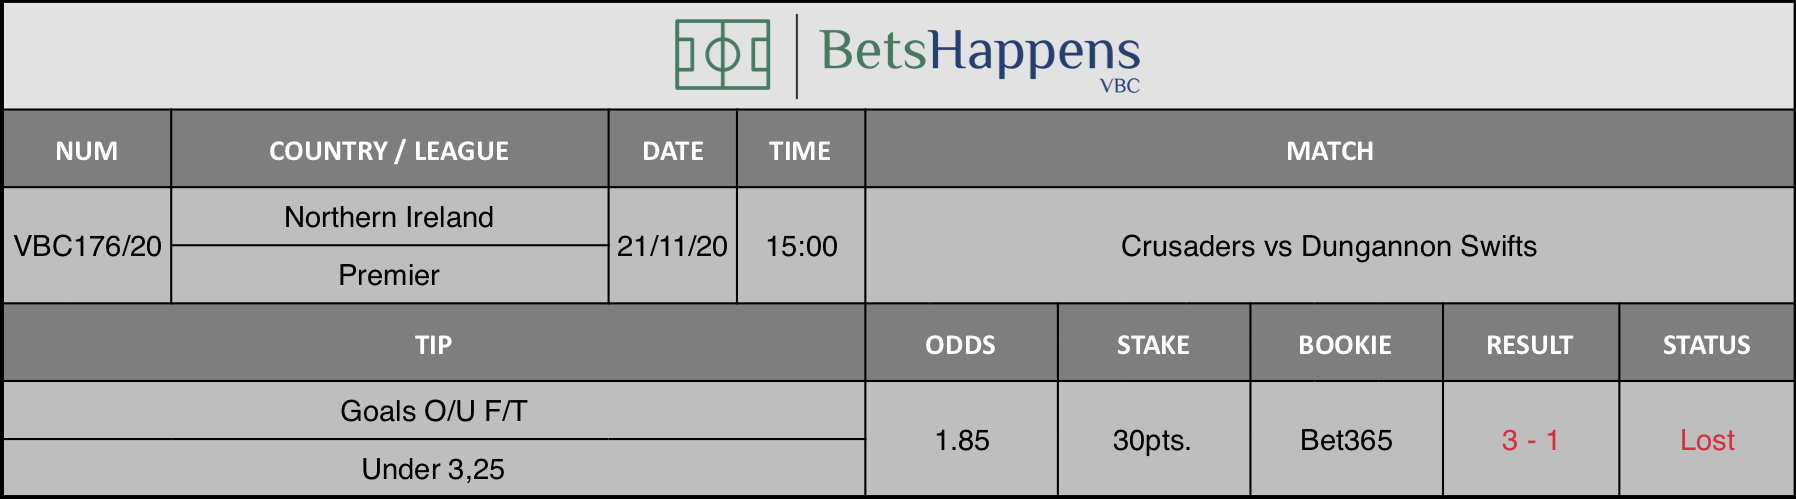 Results of our tip for the Crusaders vs Dungannon Swifts match where Goals O/U F/T Under 3,25 is recommended.